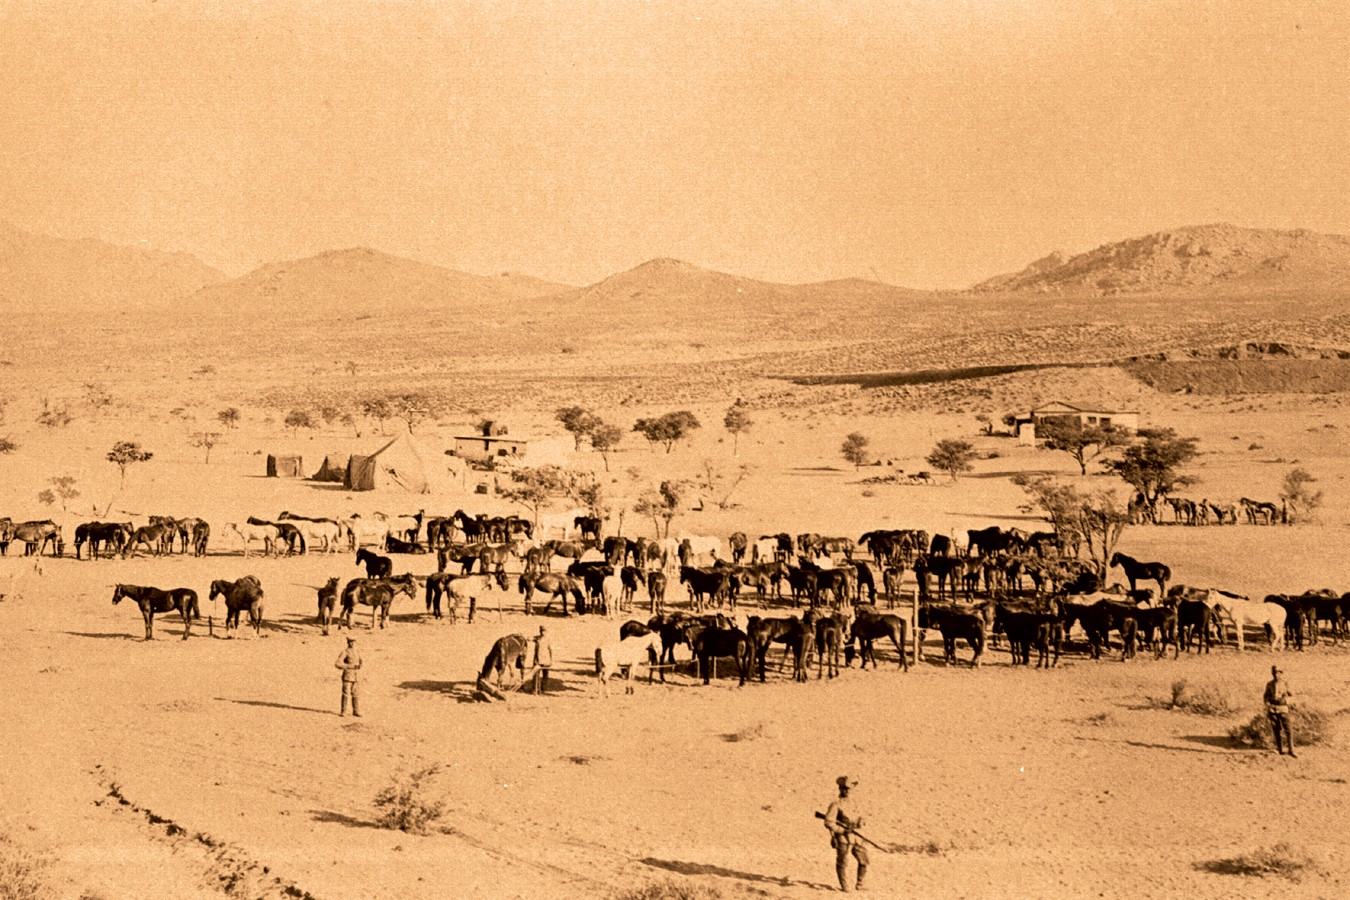 Horses of the German colonial forces near the city Aus. Source: National Archive of Namibia